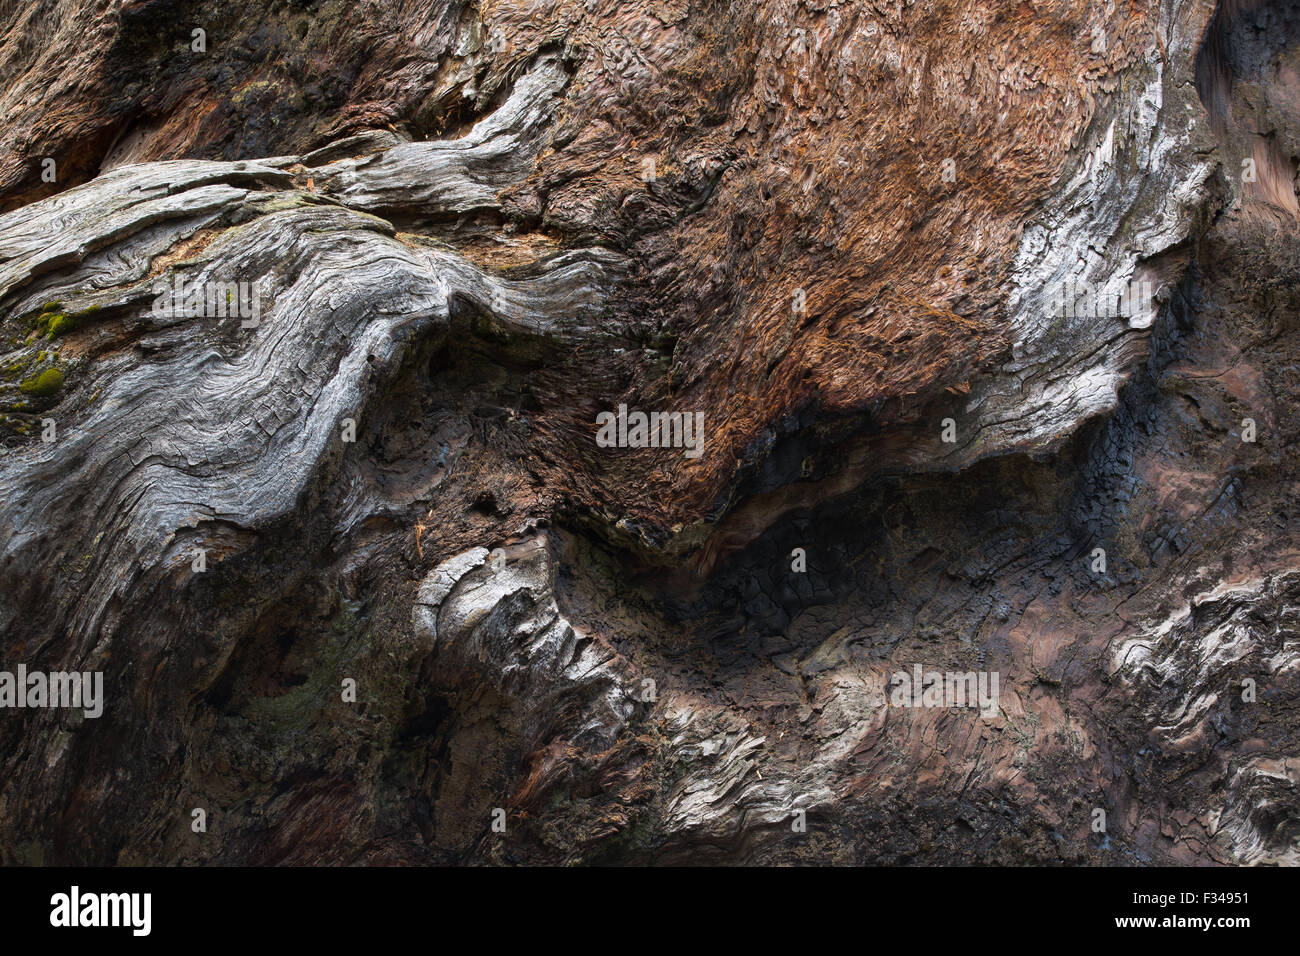 textures in the bark of Chimney Tree, a giant sequoia, Crescent Meadow, Sequoia National Park, California, USA - Stock Image